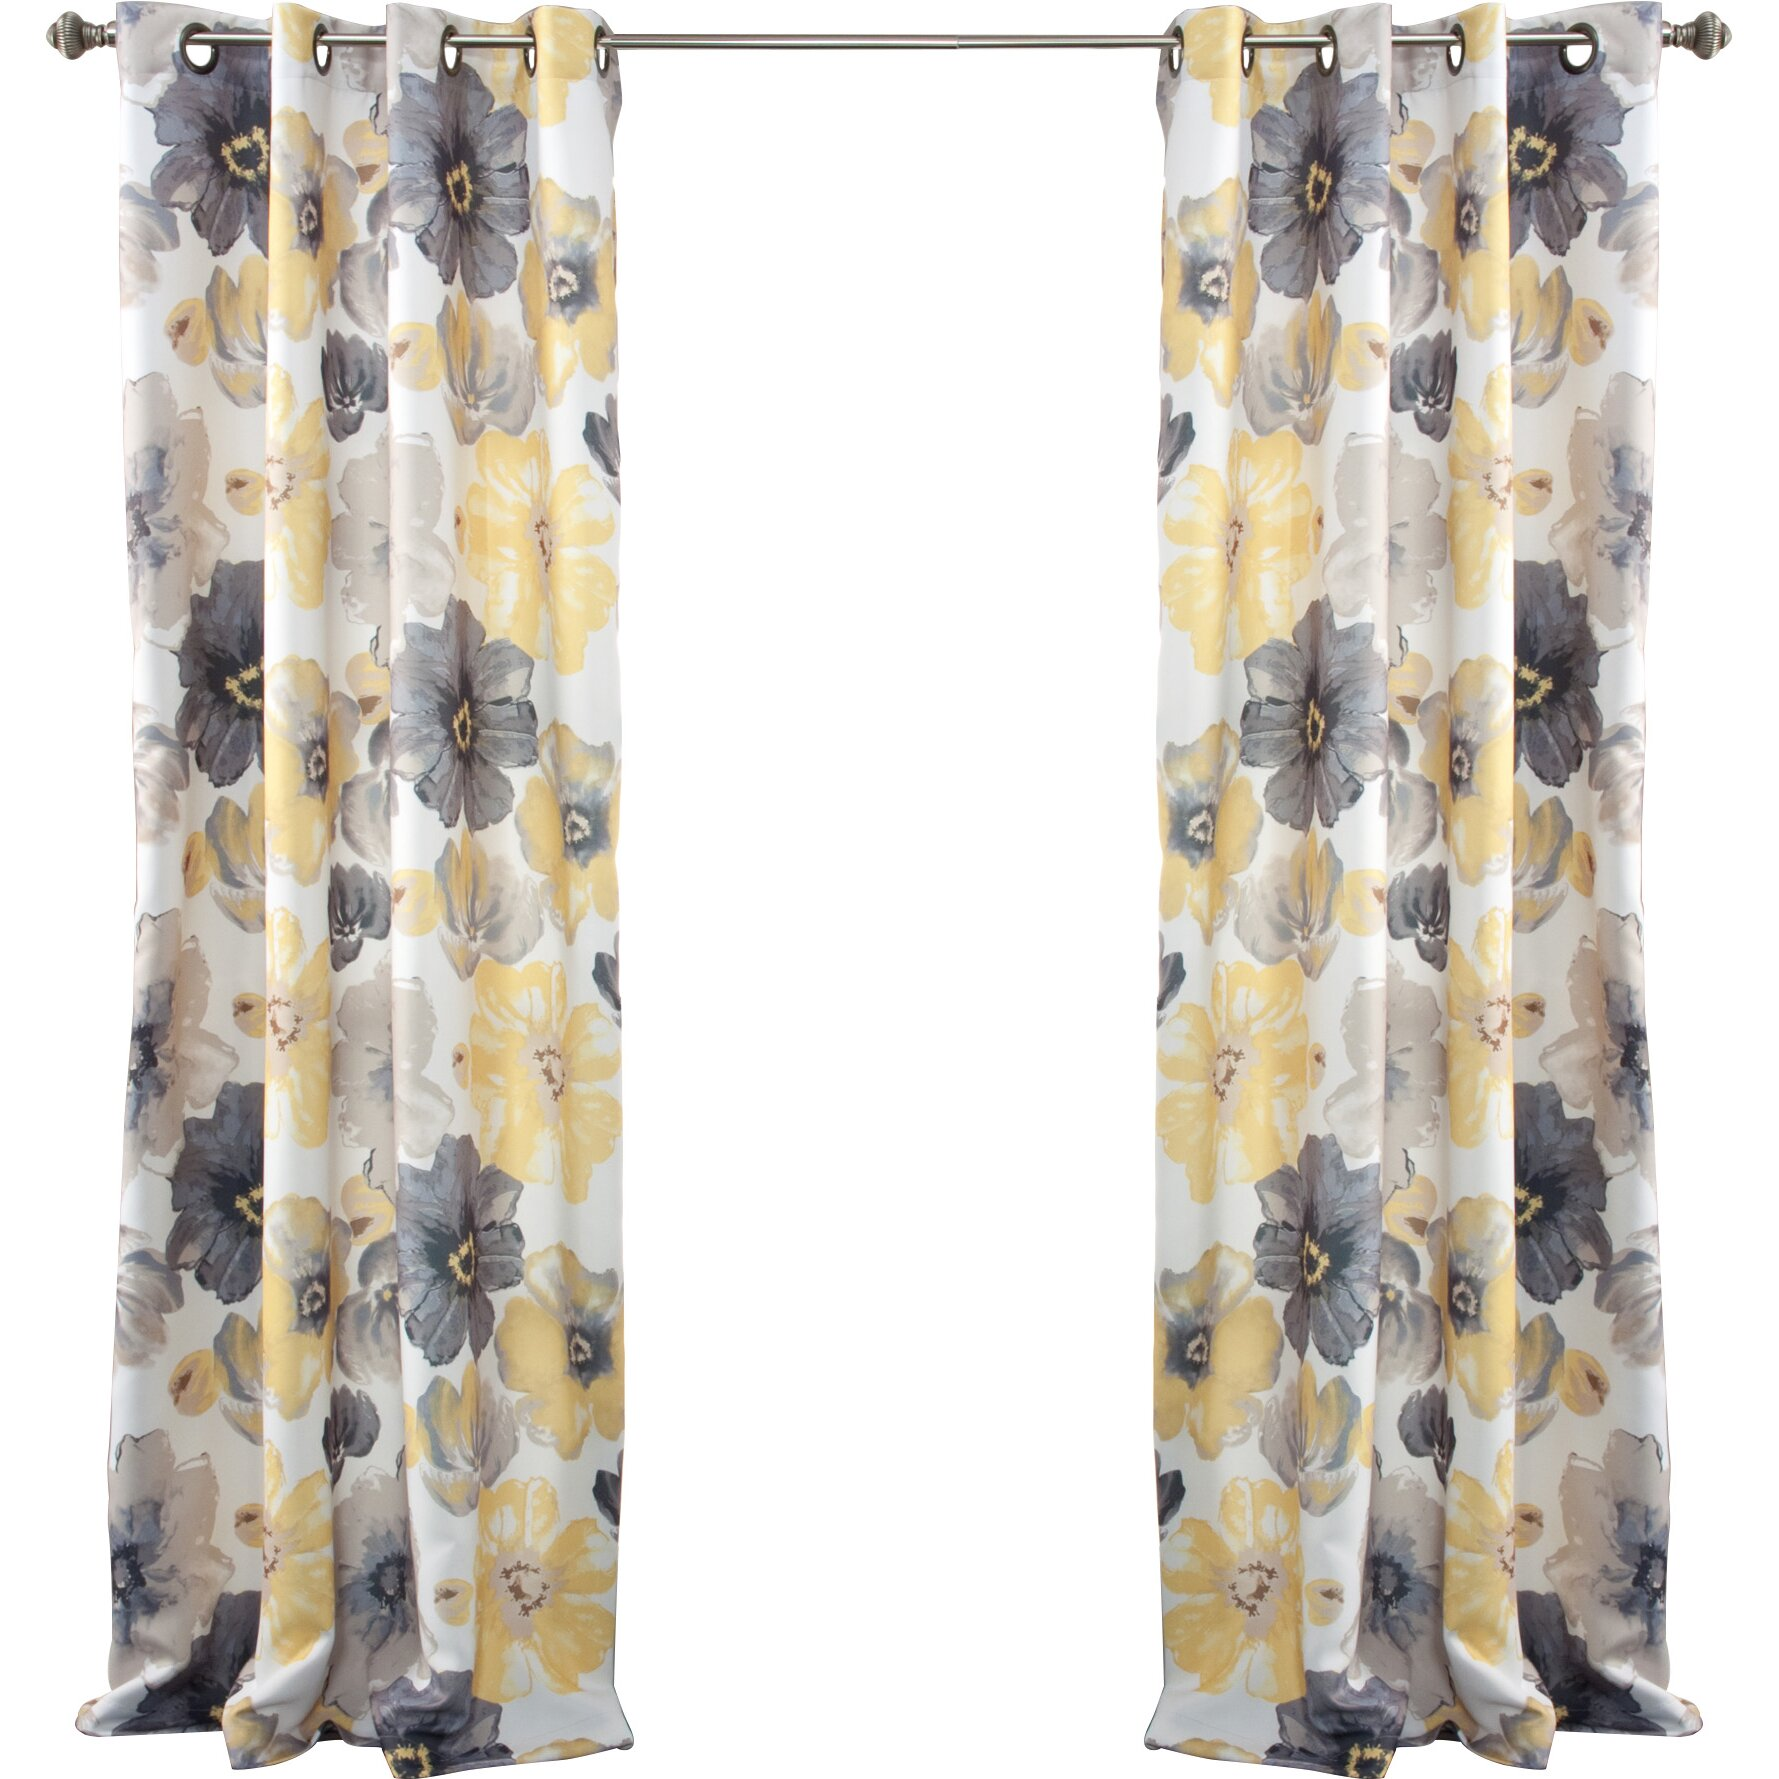 curtains drapes 84 94 length curtains drapes re